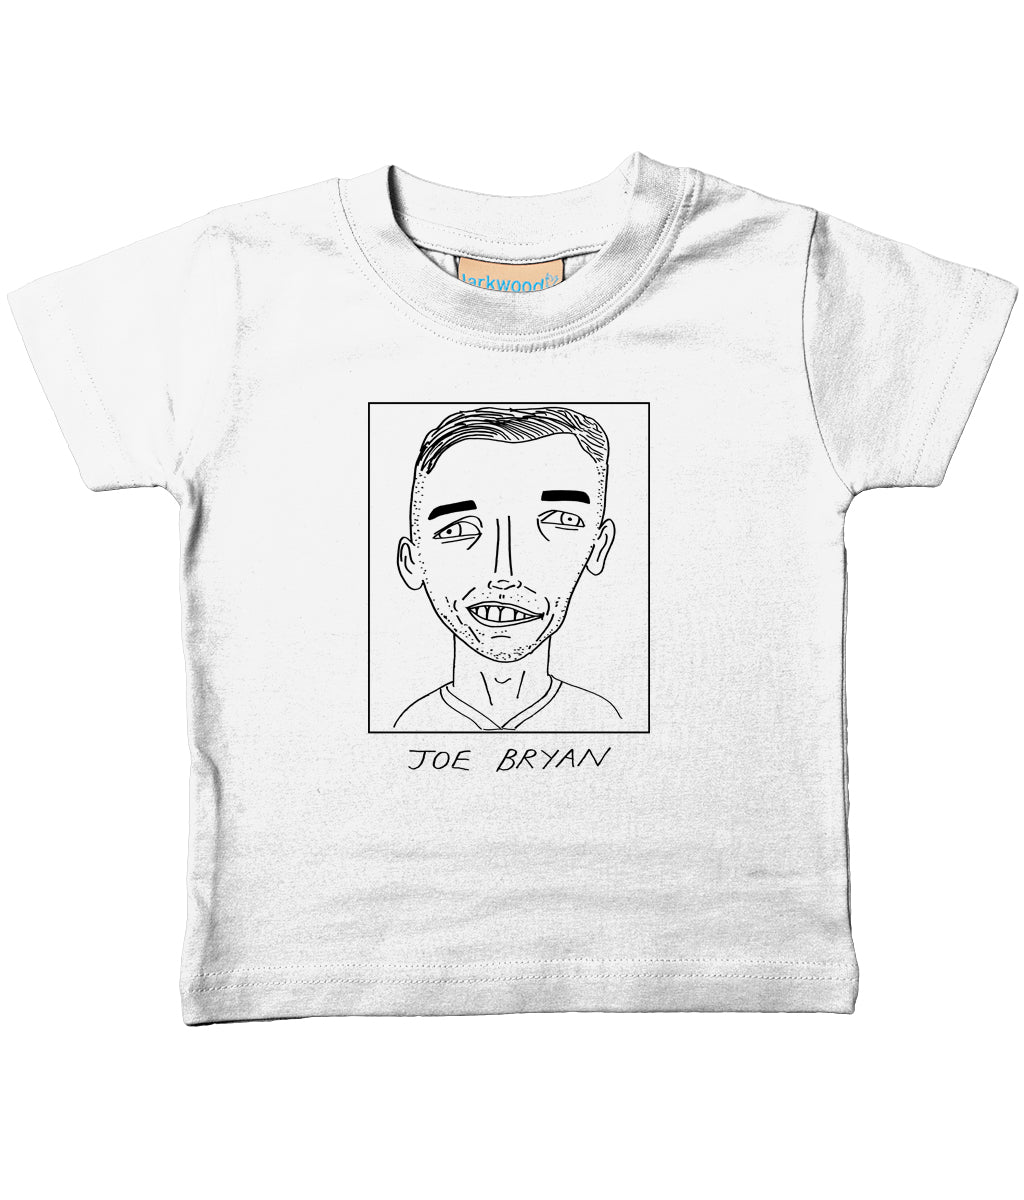 Badly Drawn Footballers - Baby / Toddler Organic T-Shirt - Joe Bryan